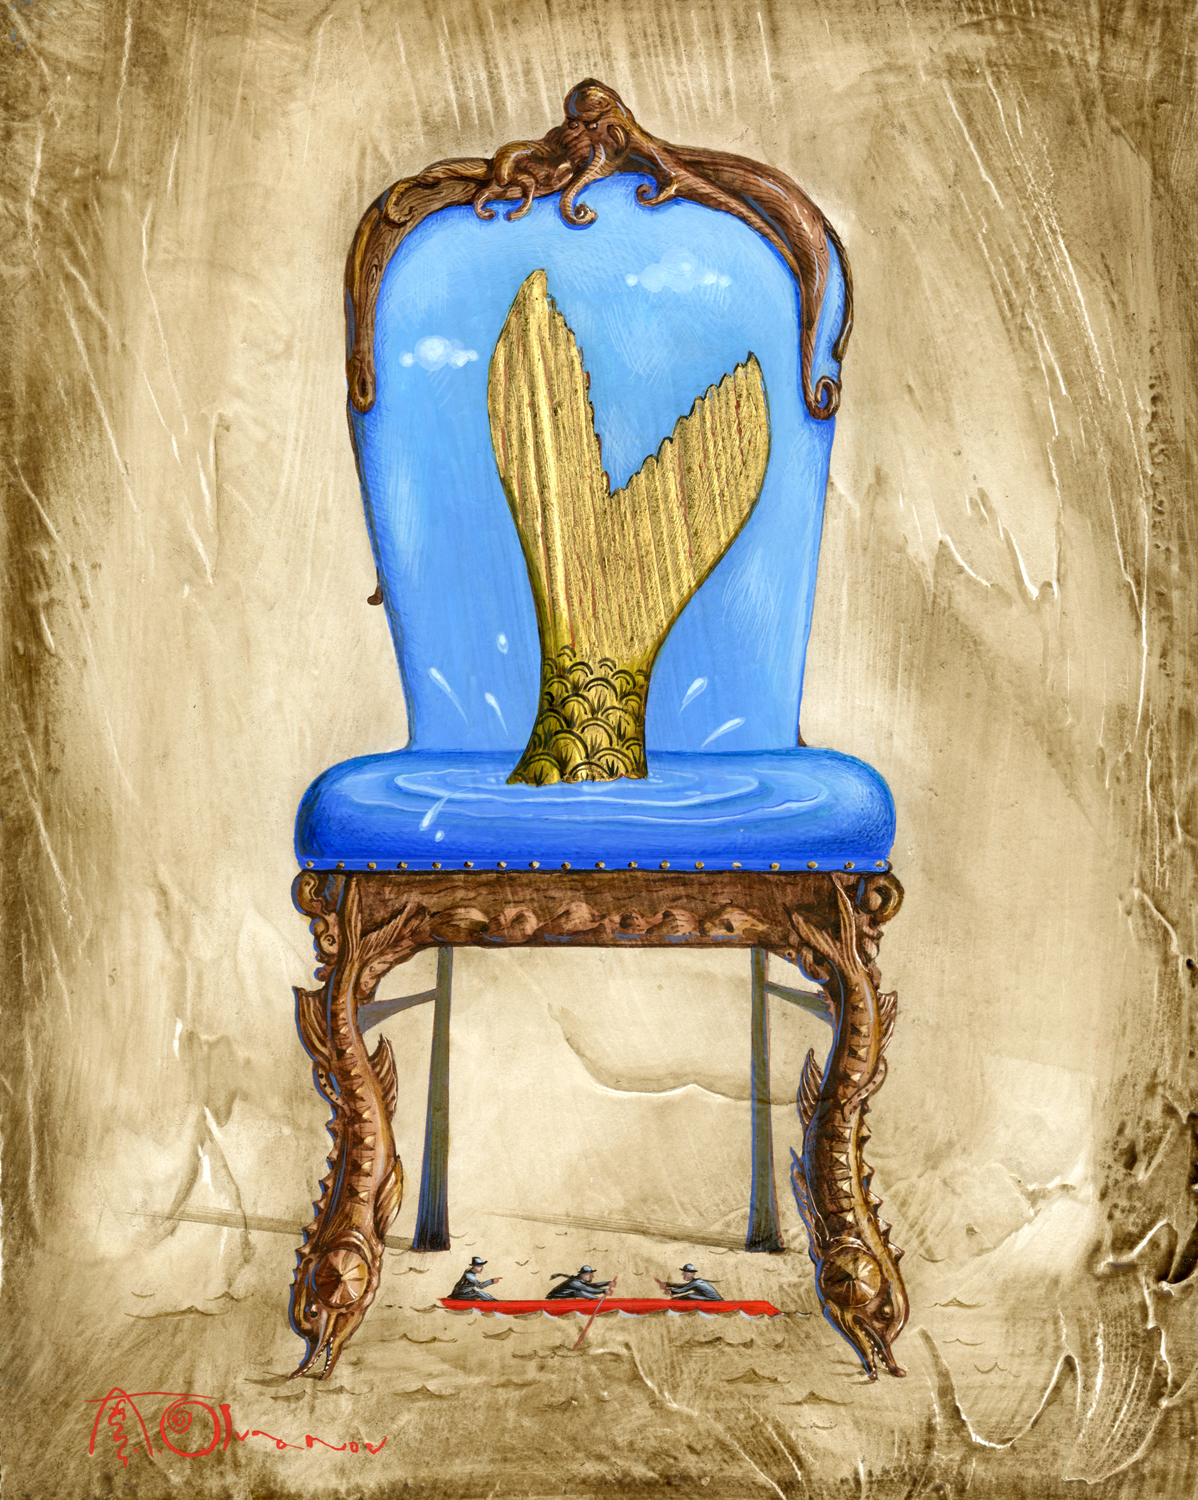 the mermaid chair most expensive gaming olga and aleksey ivanov art new egg tempera paintings from